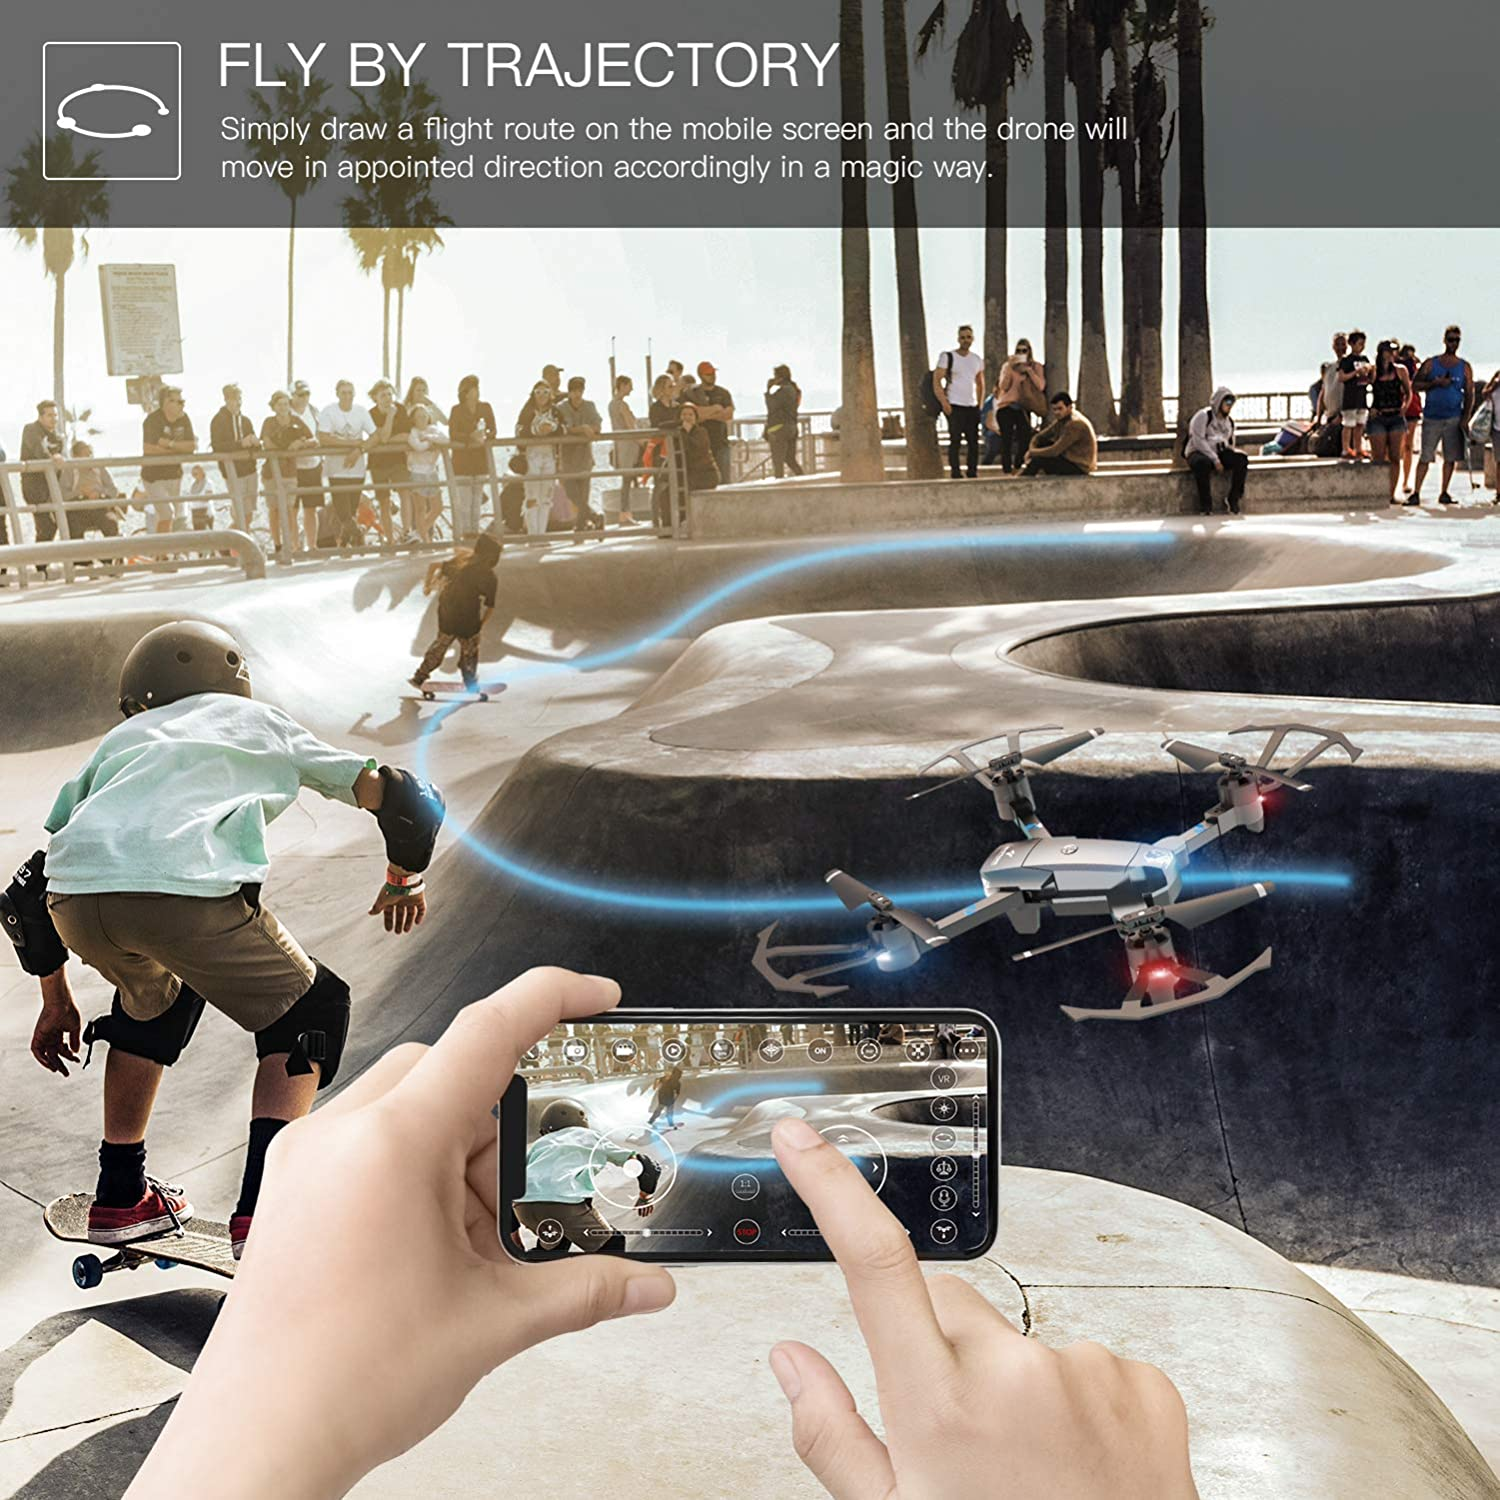 snaptain a15 foldable drone review of trajectory mode